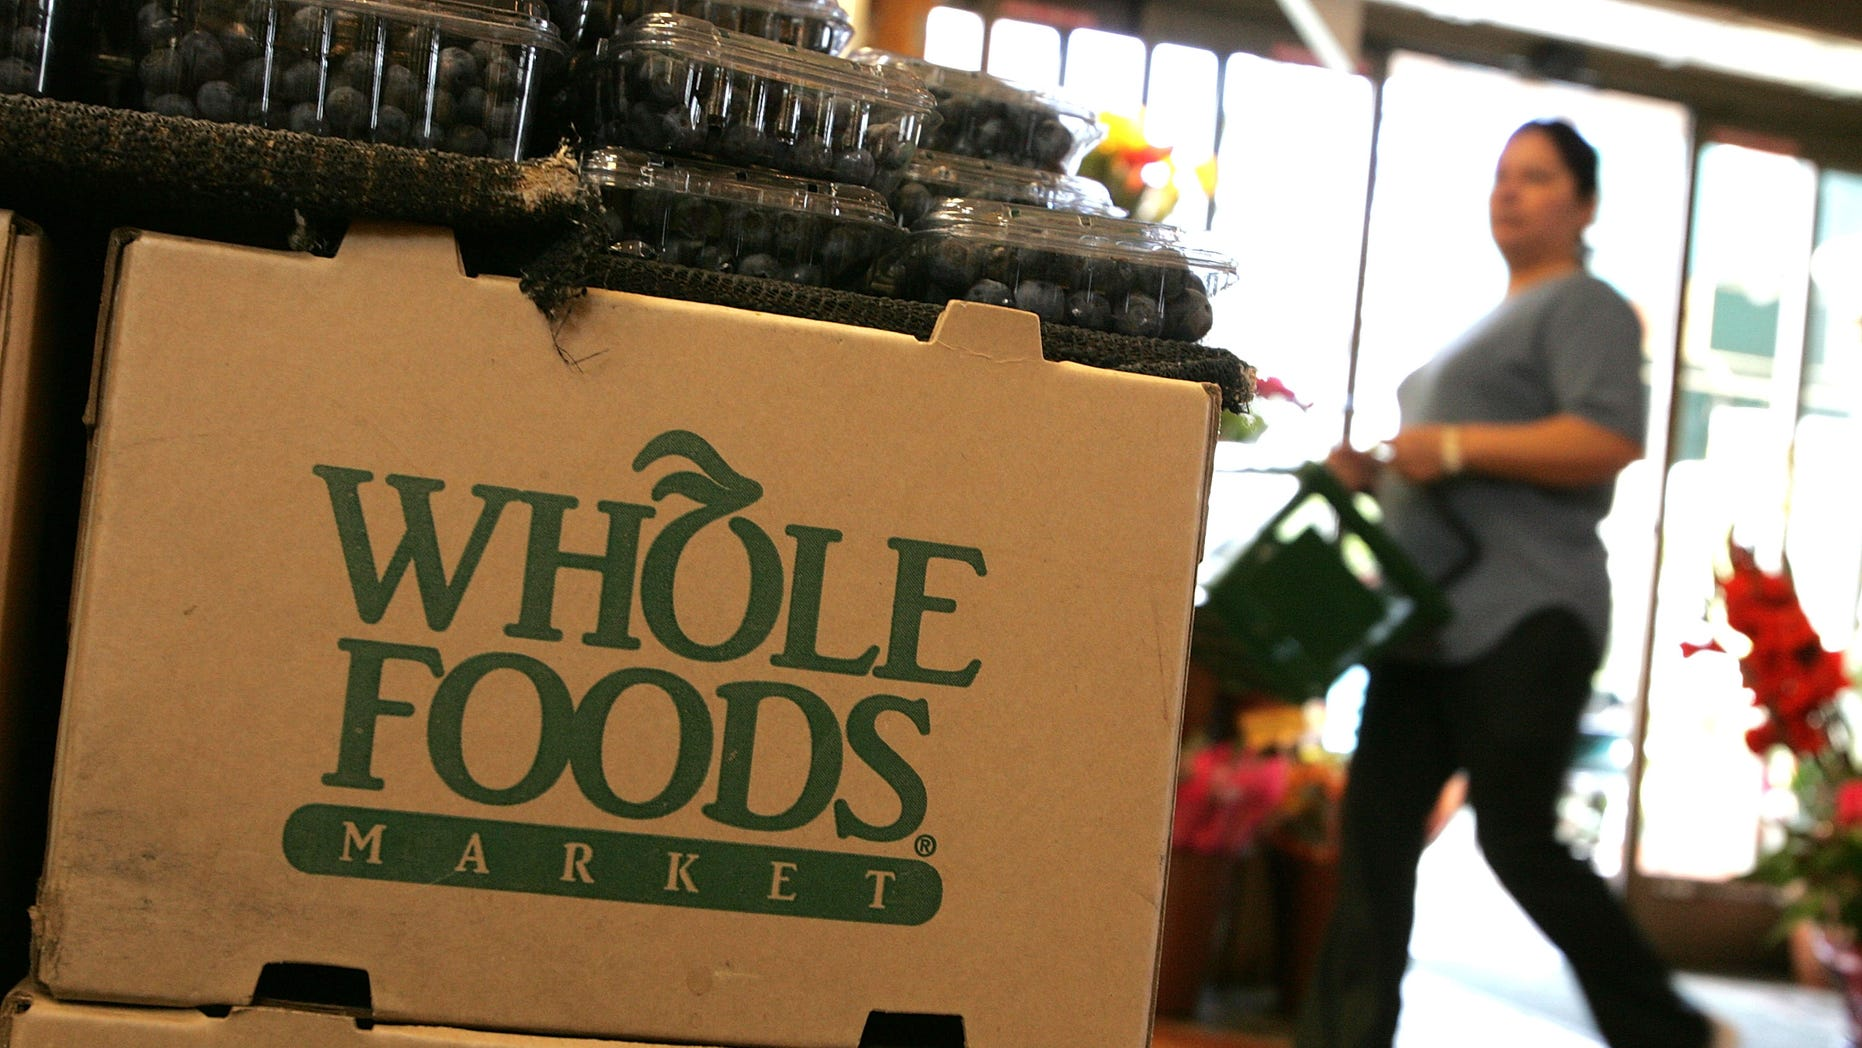 SAN FRANCISCO - FEBRUARY 22:  The Whole Foods logo adorns a cardboard box at a Whole Foods Market February 22, 2007 in San Francisco, California. Whole Foods Market Inc. announced that it plans to purchase Wild Oats Market Inc. for an estimated $565 million in hopes of competing with larger food chains that have started to introduce organic and prepared foods to their inventories.  (Photo by Justin Sullivan/Getty Images)